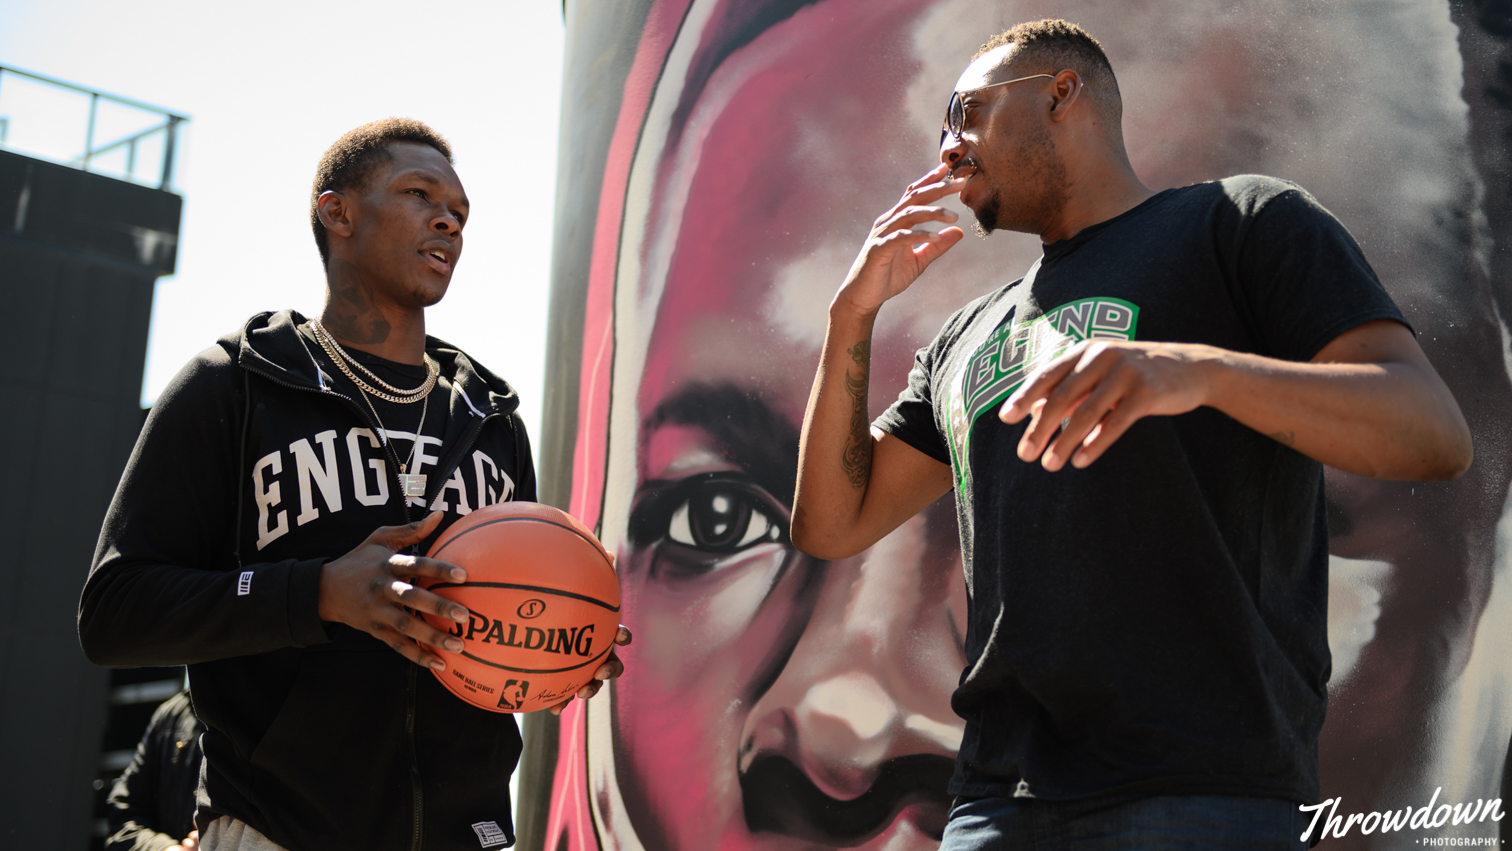 Adesanya and Pierce discuss their athletic careers.